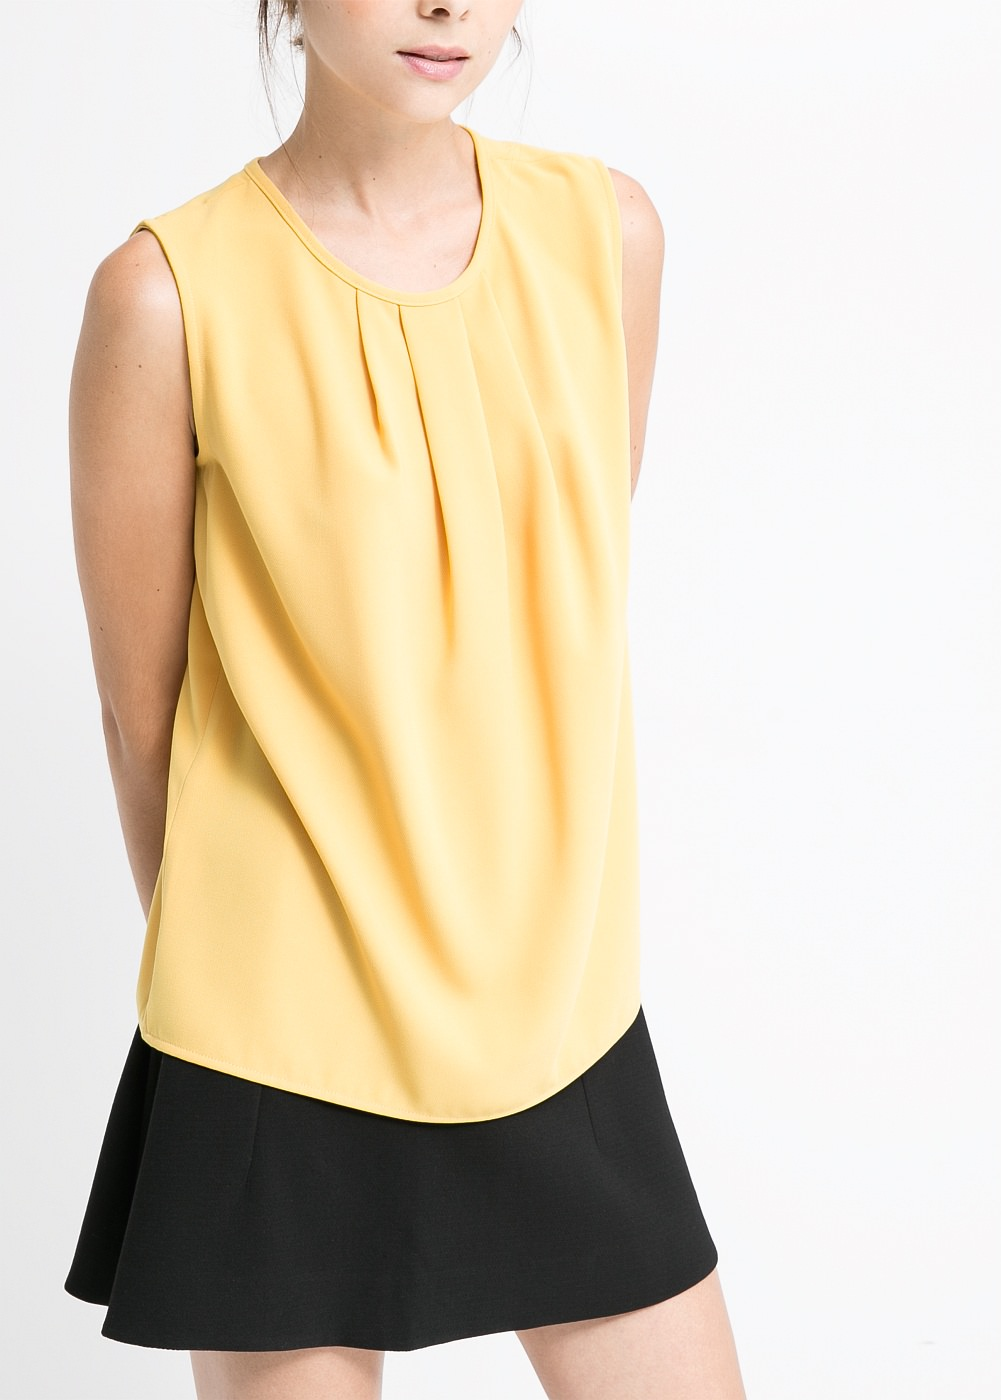 Mango yellow top- Happy New Year